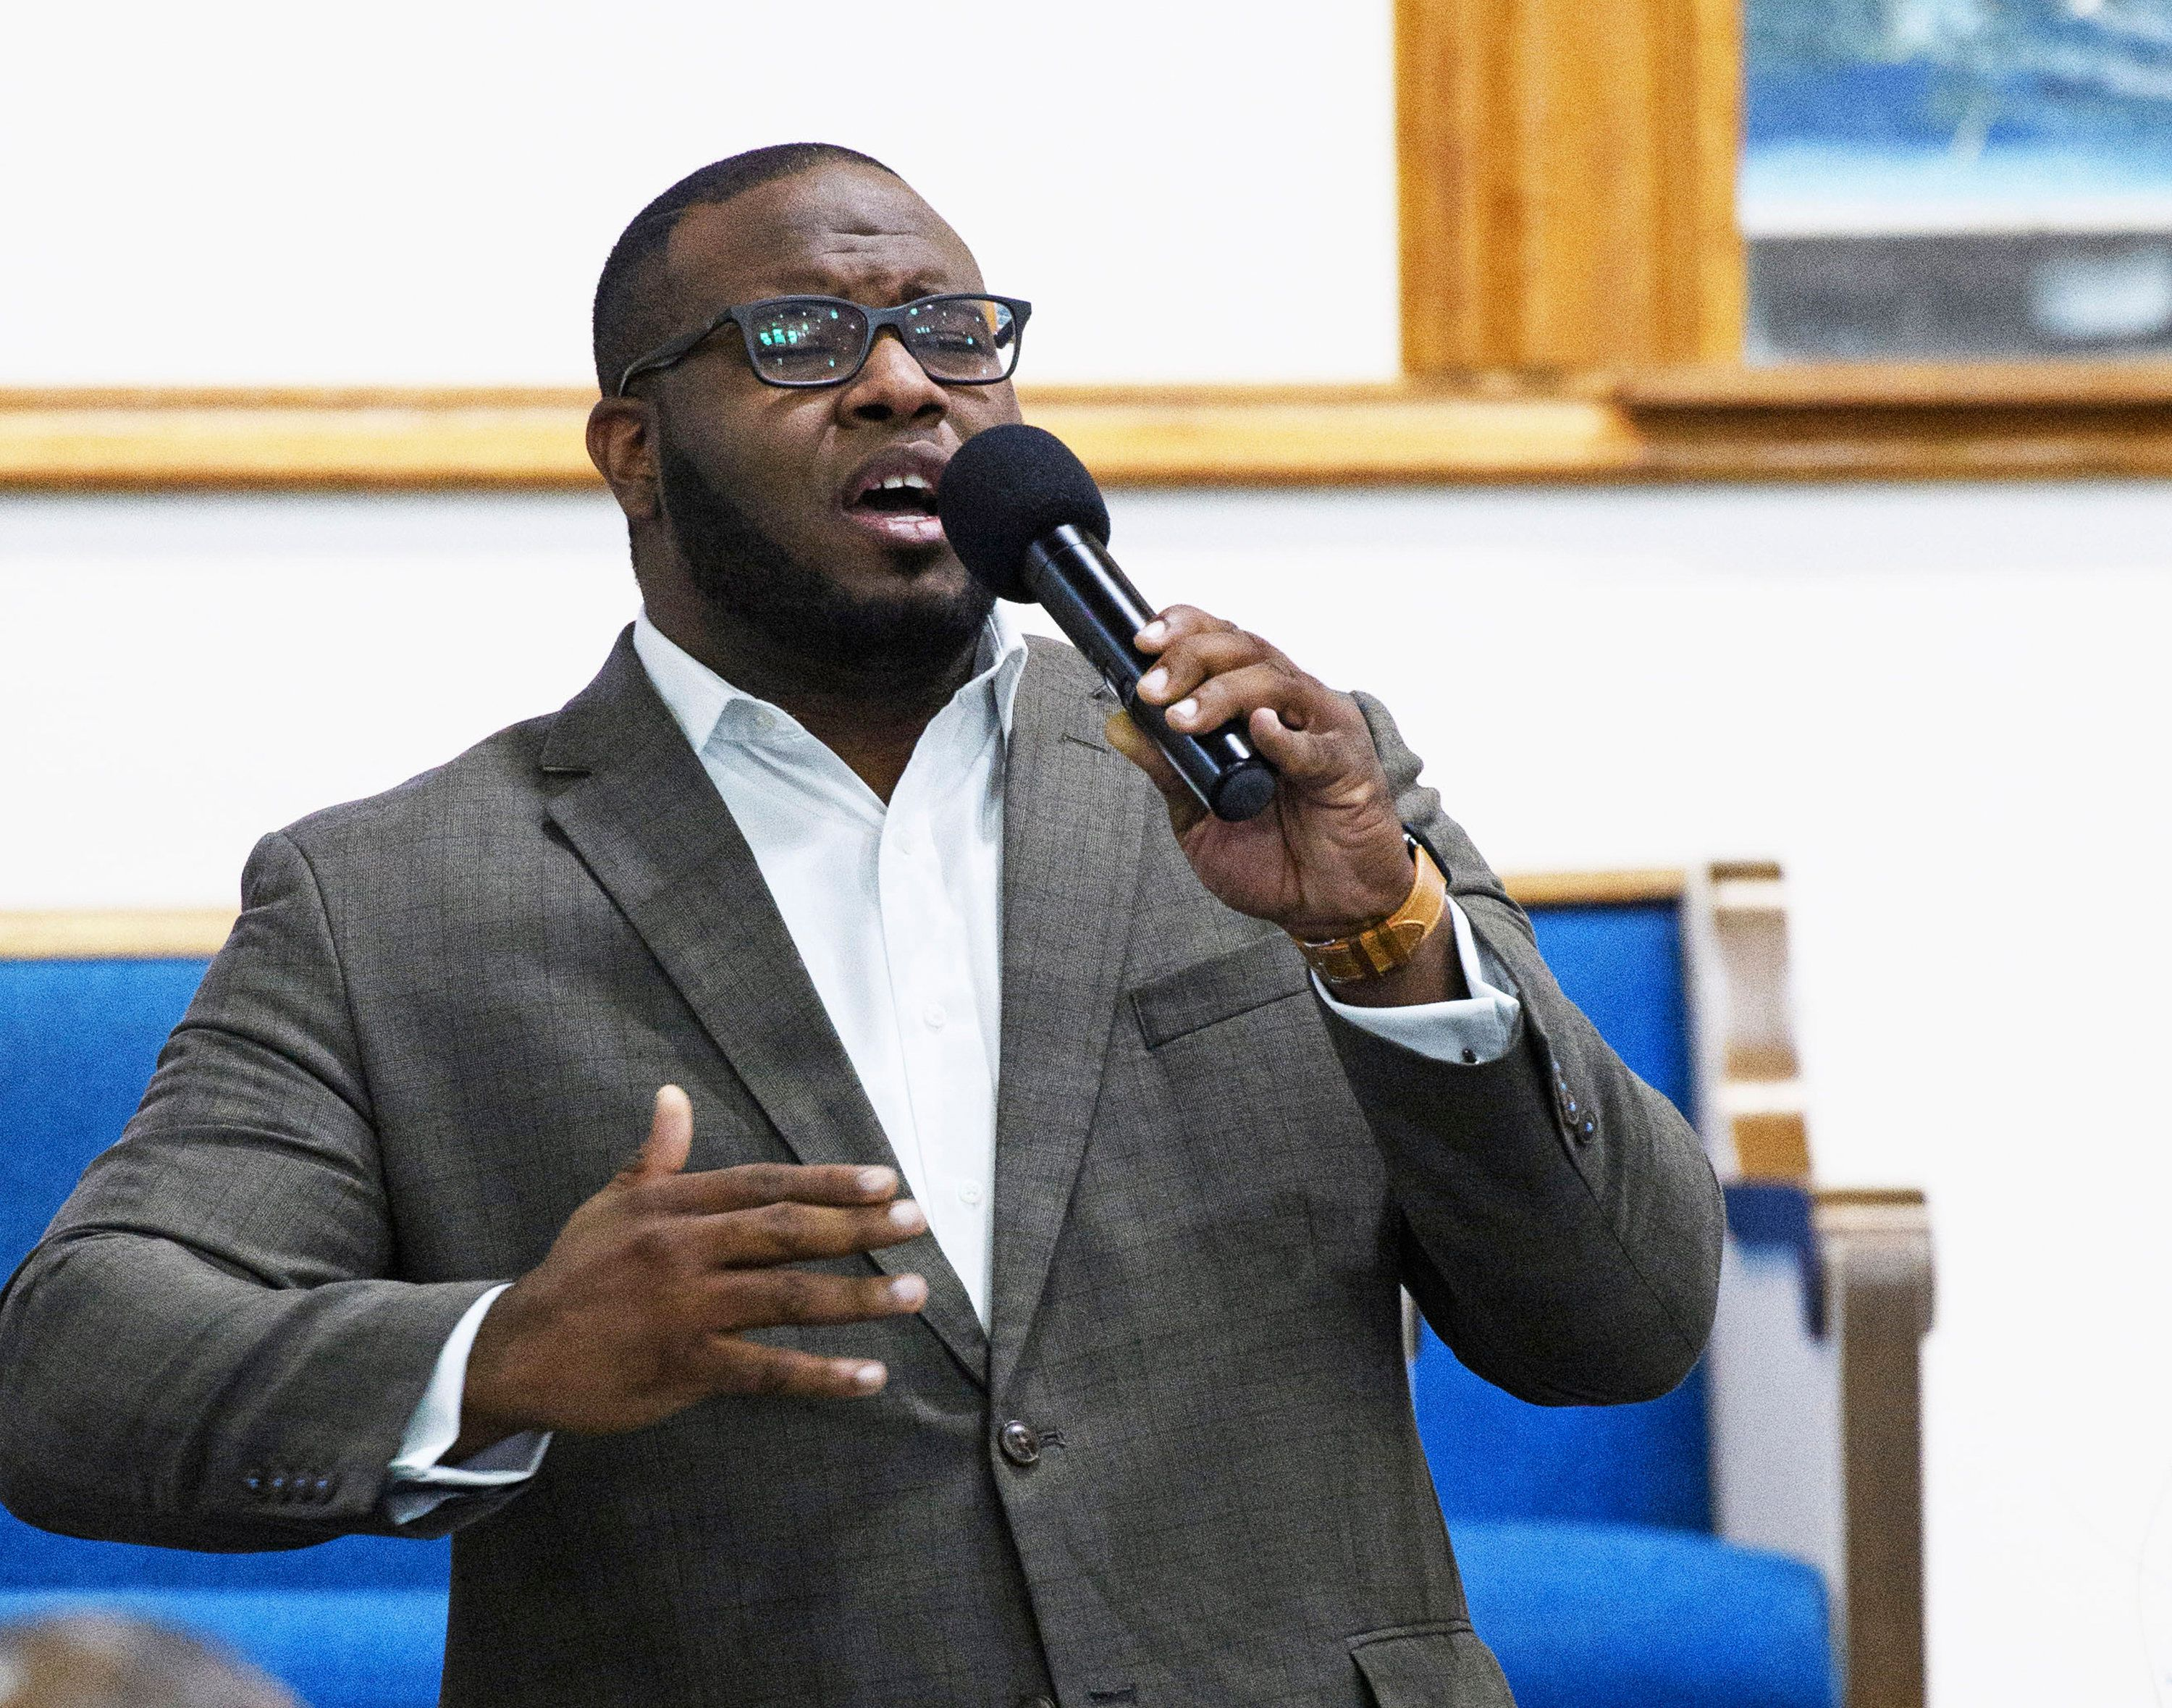 Botham Shem Jean leads worship at a Harding University reception in Dallas in 2017.